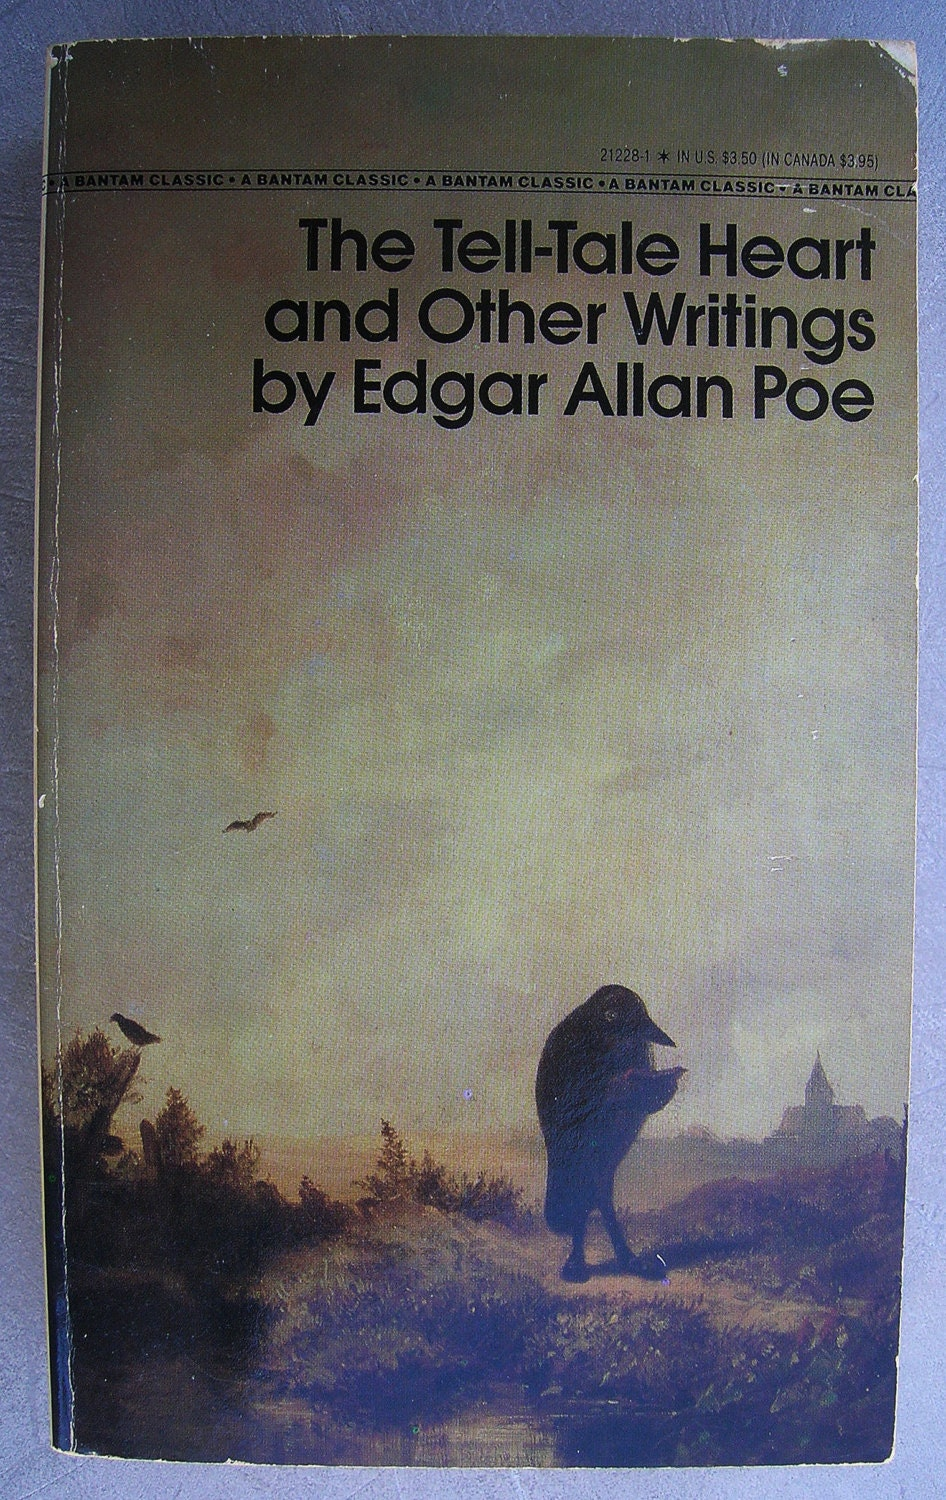 comparing works of edgar allen poe essay Edgar allen poe compare and contrast edgar allen poe compare and contrast the purloined letter and the murders of the rue morgue have a lot of similarities and differences edgar allen poe, the author, wrote weird horror stories but.